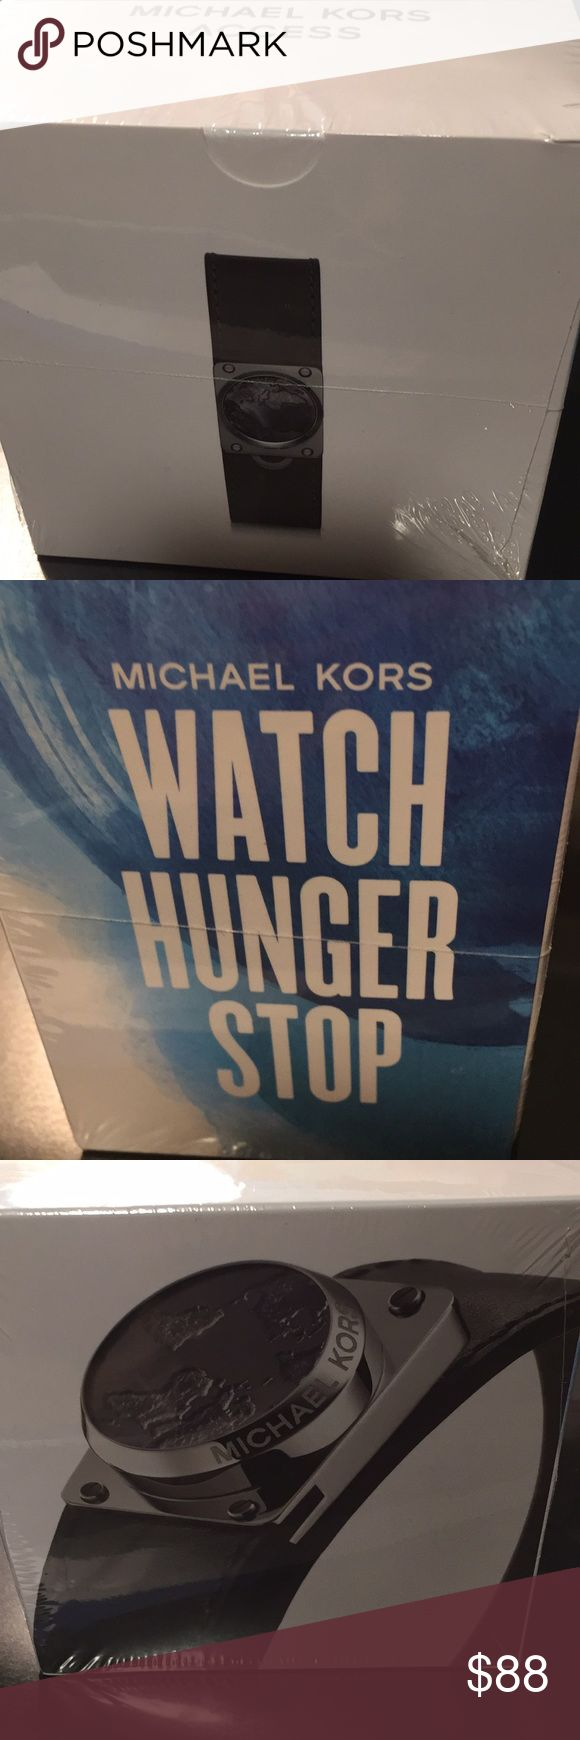 Michael kors watch hunger stop New in package!!! Never used. Color is black. Michael Kors Accessories Watches